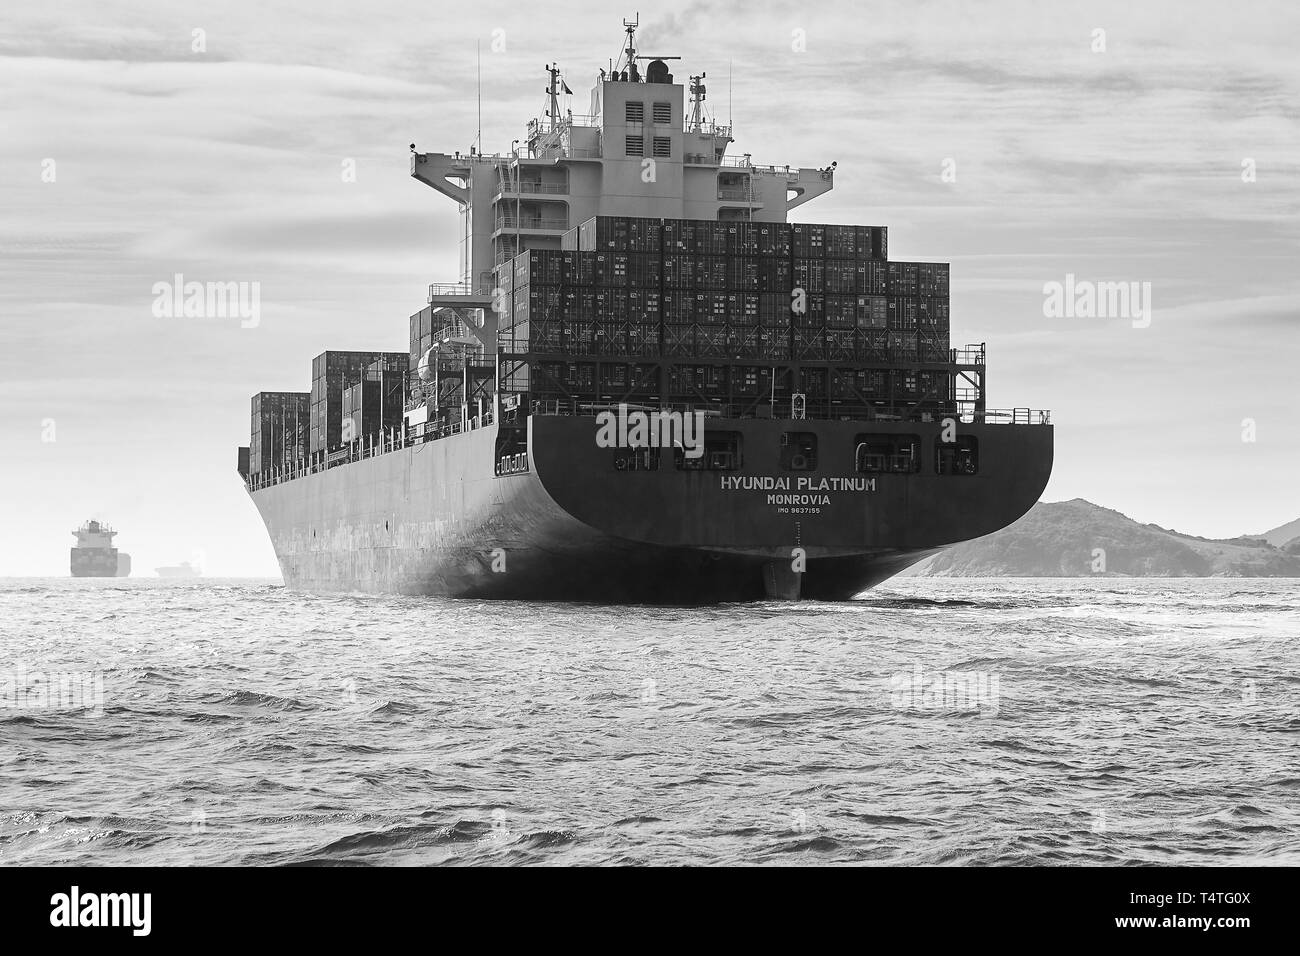 Black And White Photo Of The Giant Container Ship, Hyundai